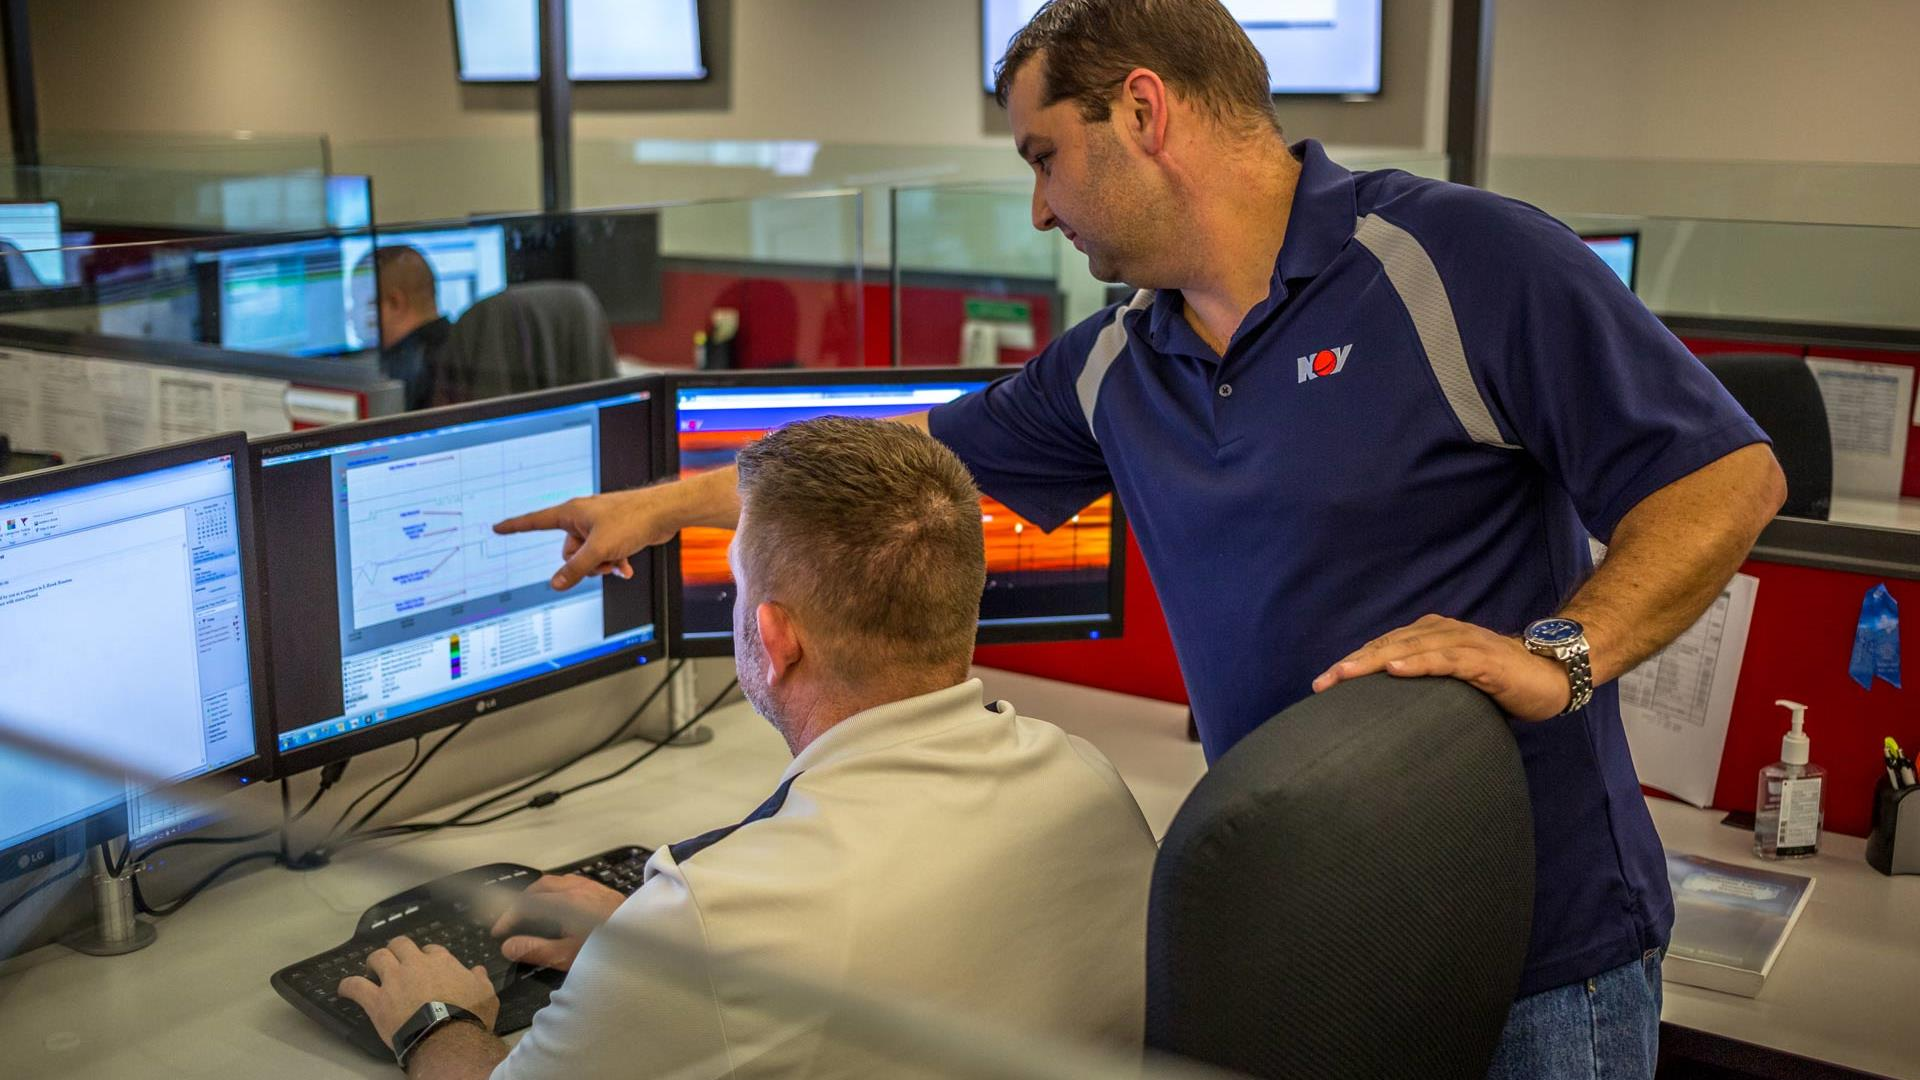 Engineers reviewing MAX data